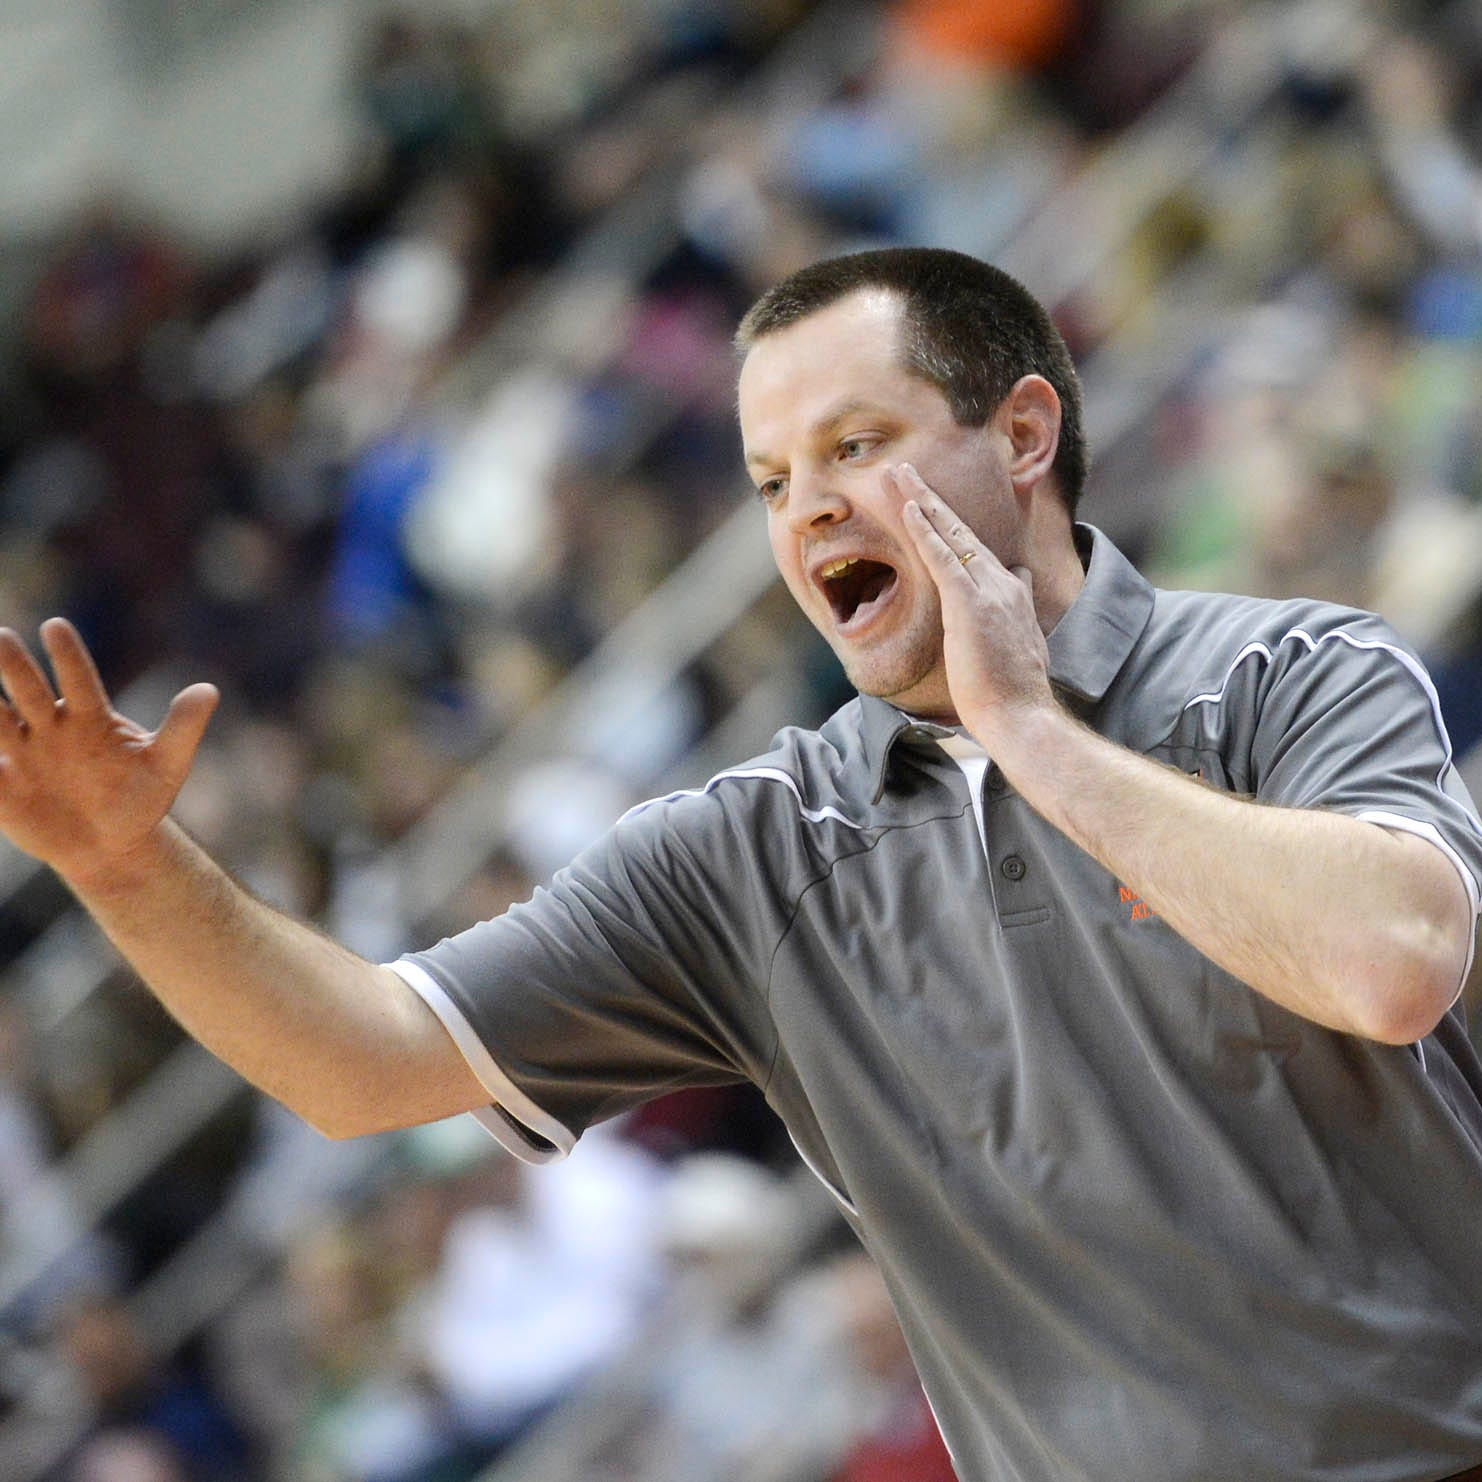 Basketball coach who made history for Hanover steps down after 11 seasons